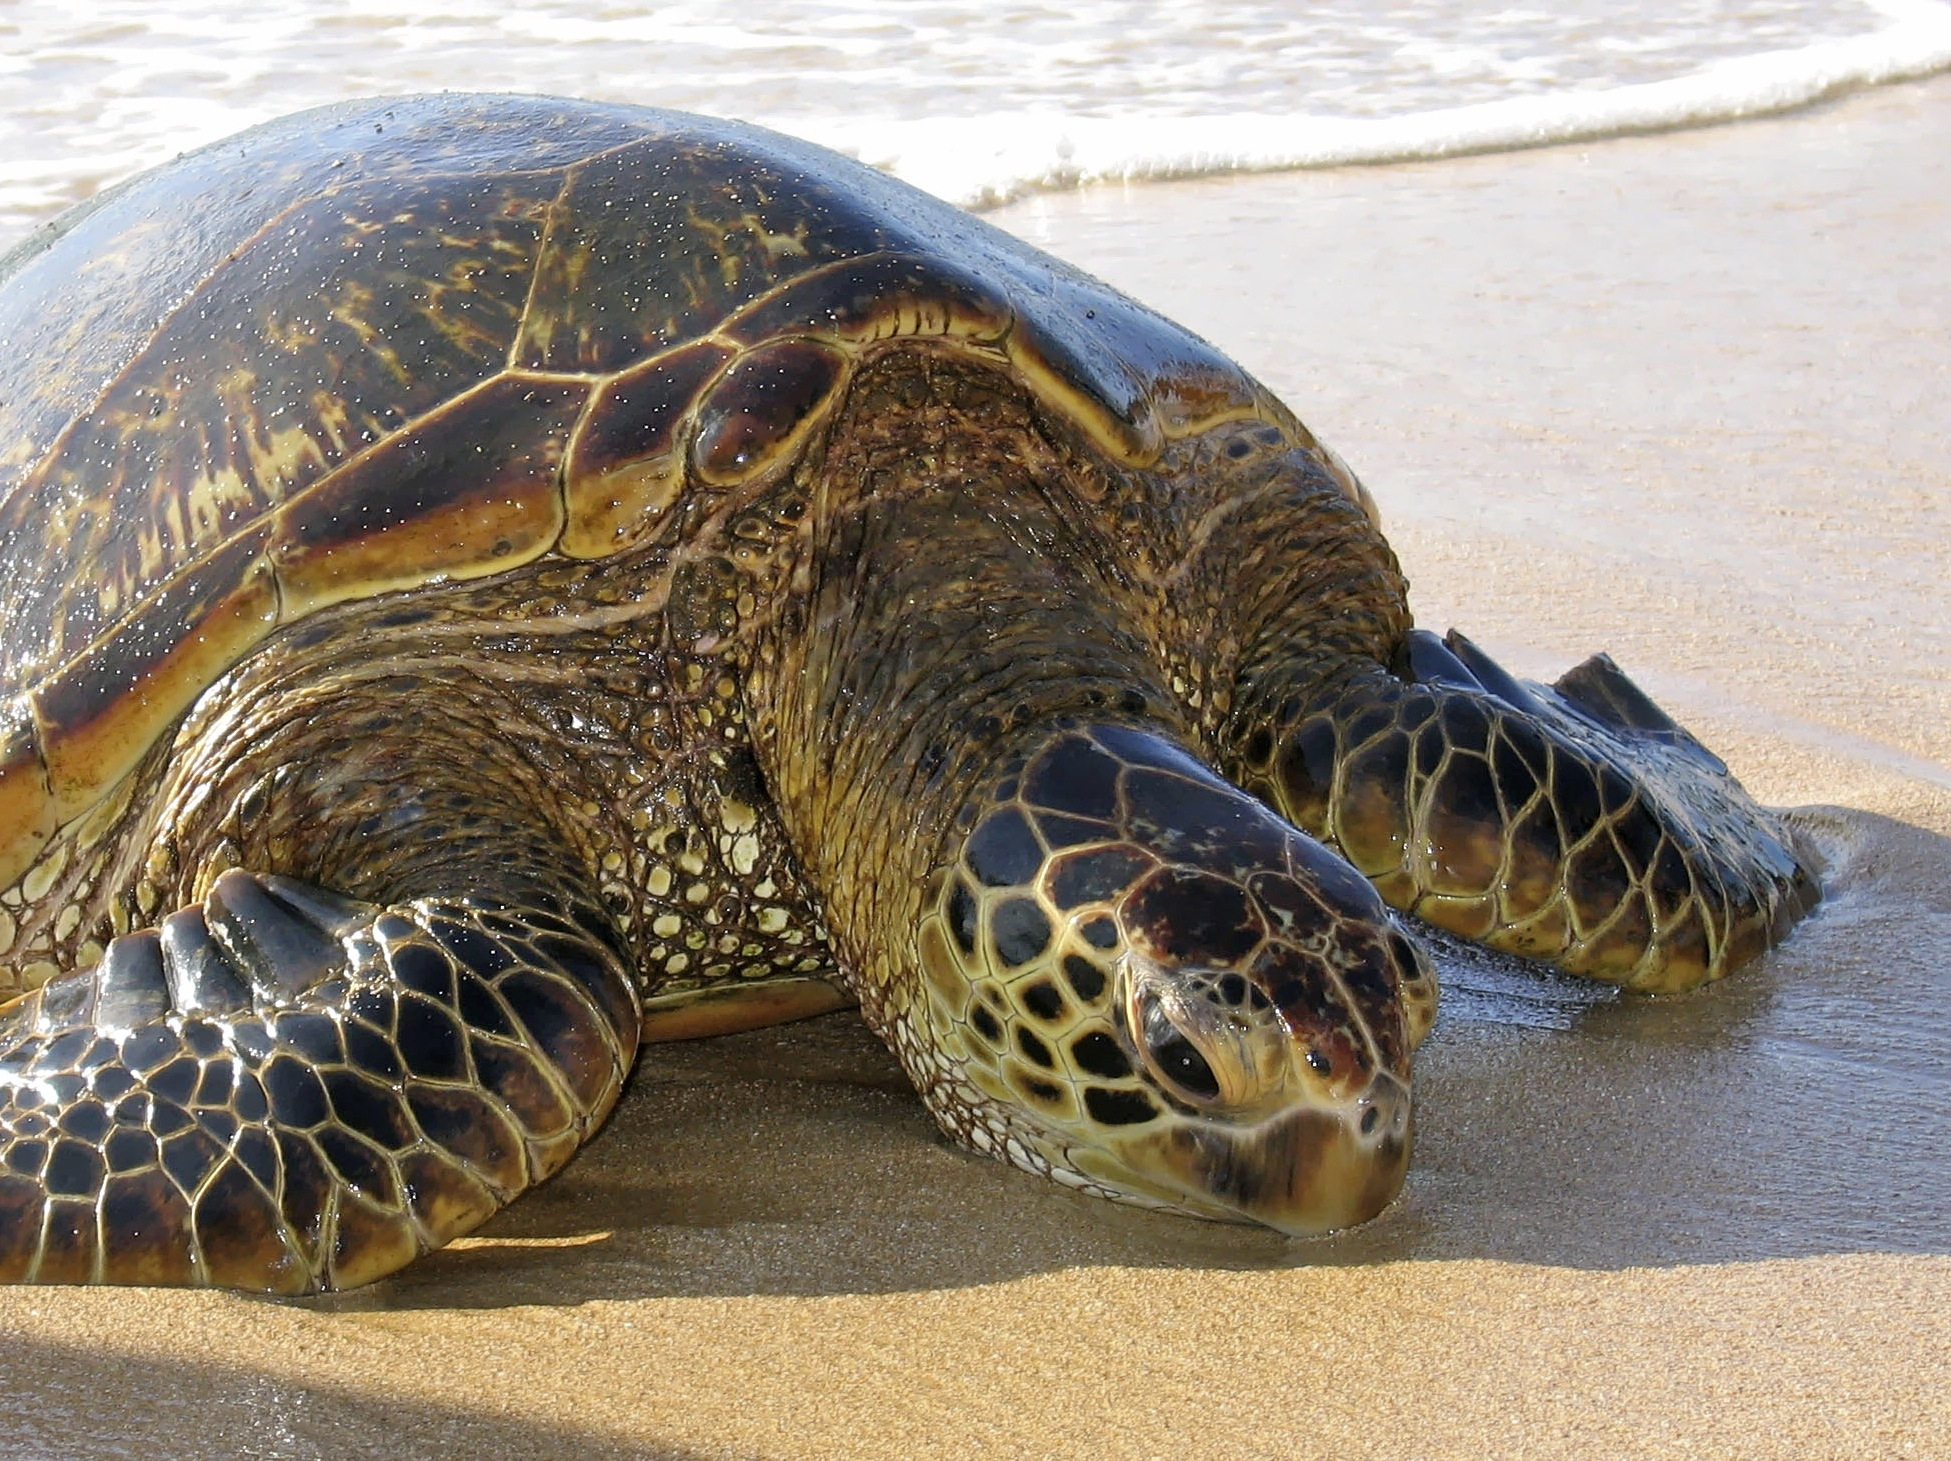 Green Hawaiian Sea Turtle basking on the beach. image: waikiki